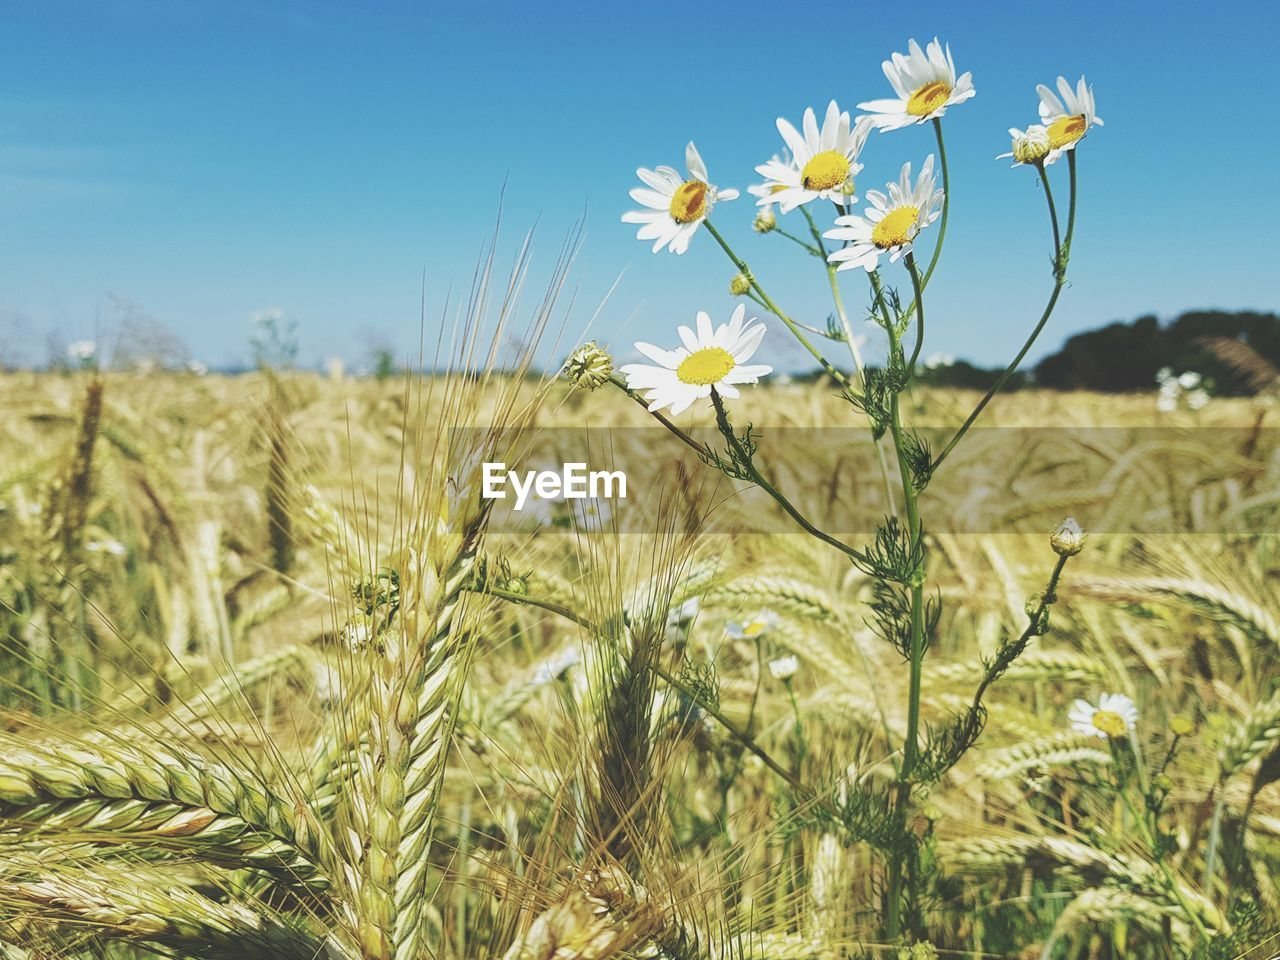 plant, growth, field, beauty in nature, flowering plant, land, sky, flower, nature, landscape, freshness, focus on foreground, day, close-up, agriculture, rural scene, crop, tranquility, no people, sunlight, outdoors